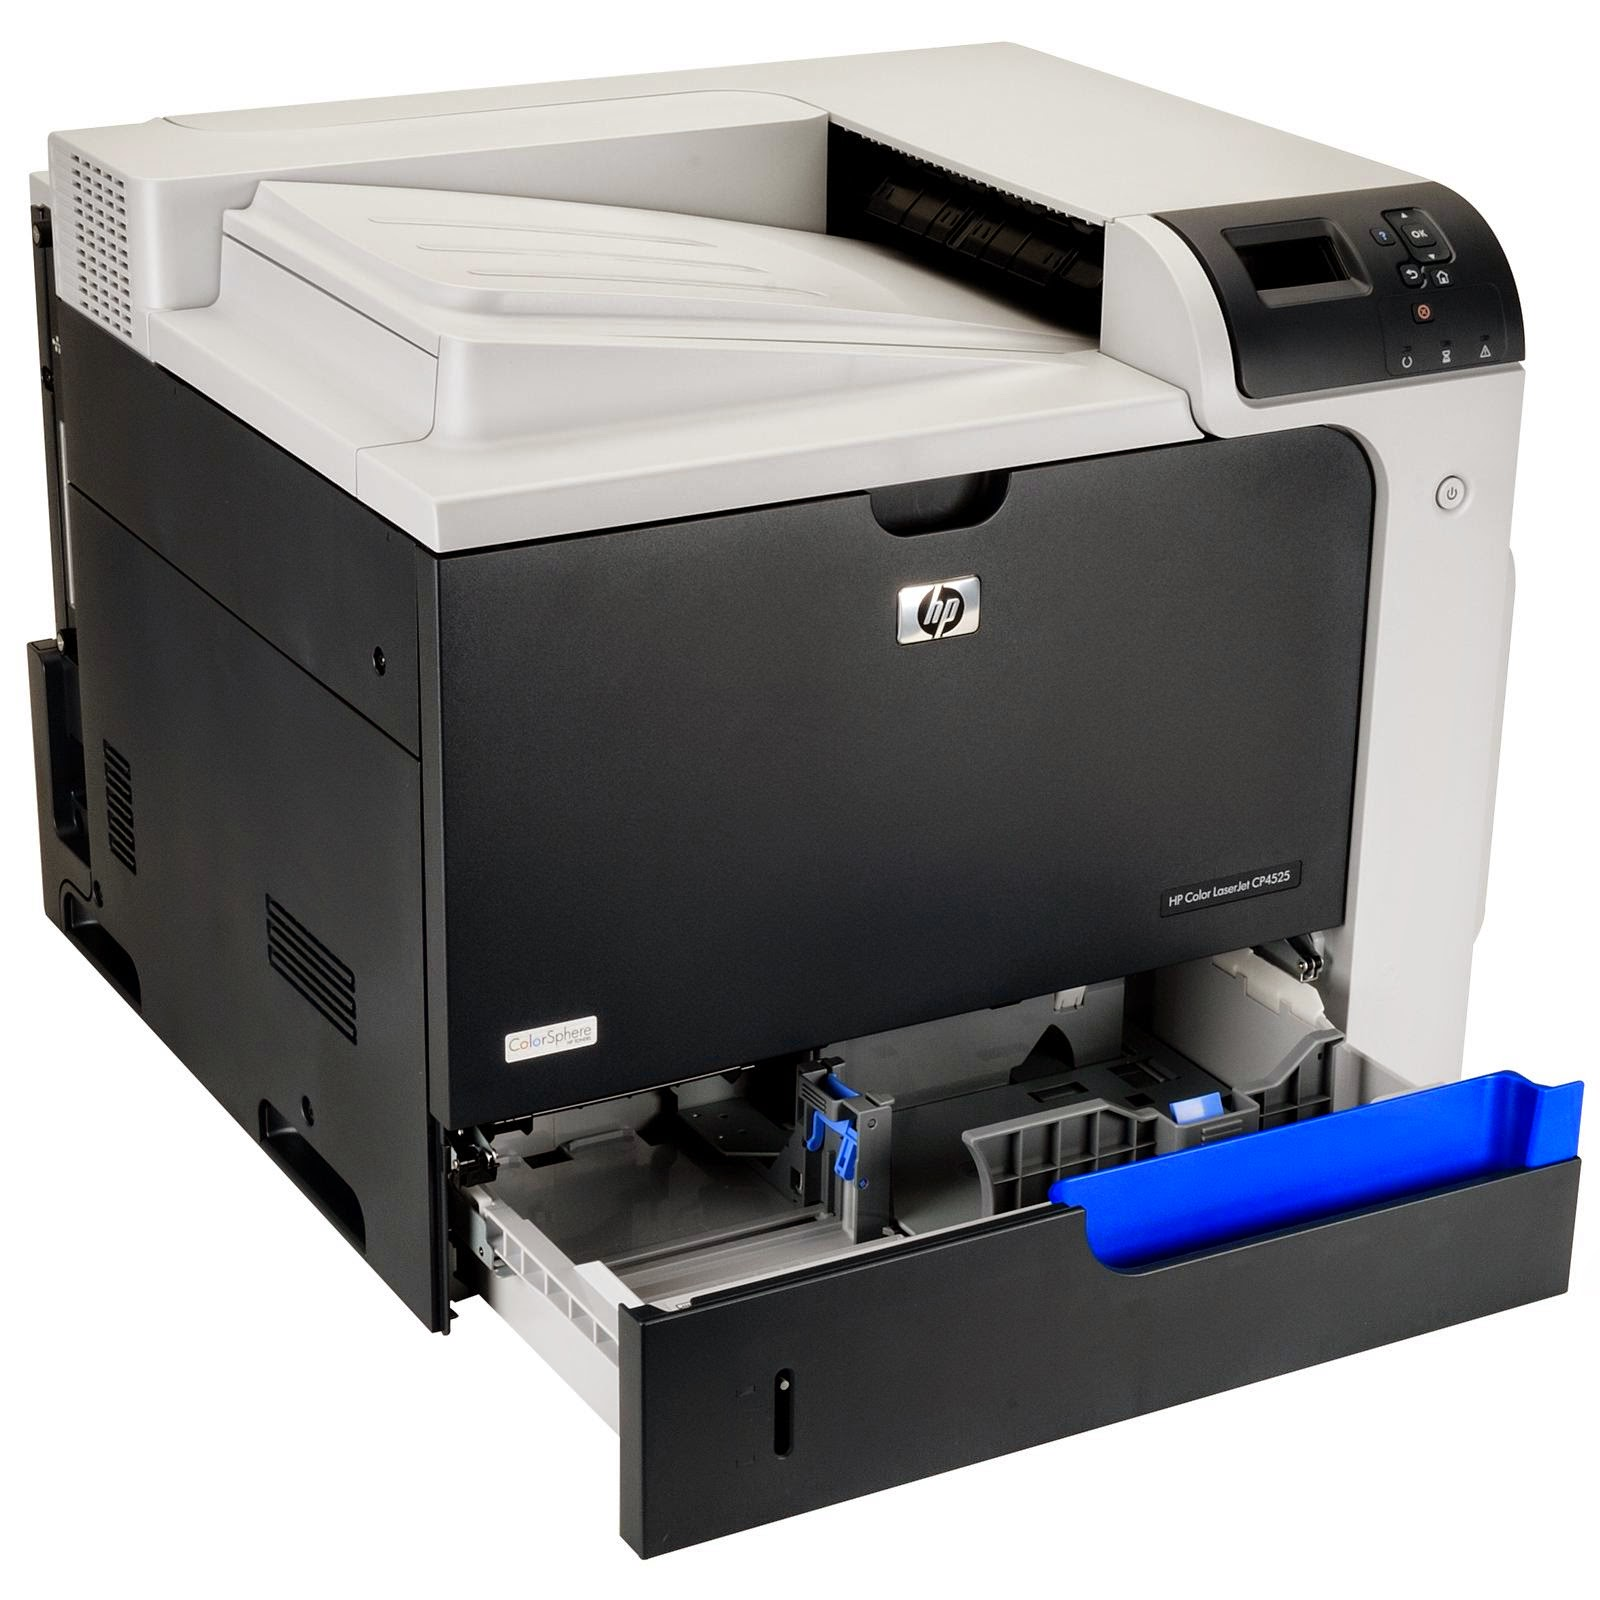 HP Color LaserJet Enterprise CP4525dn Printer (CC494A)